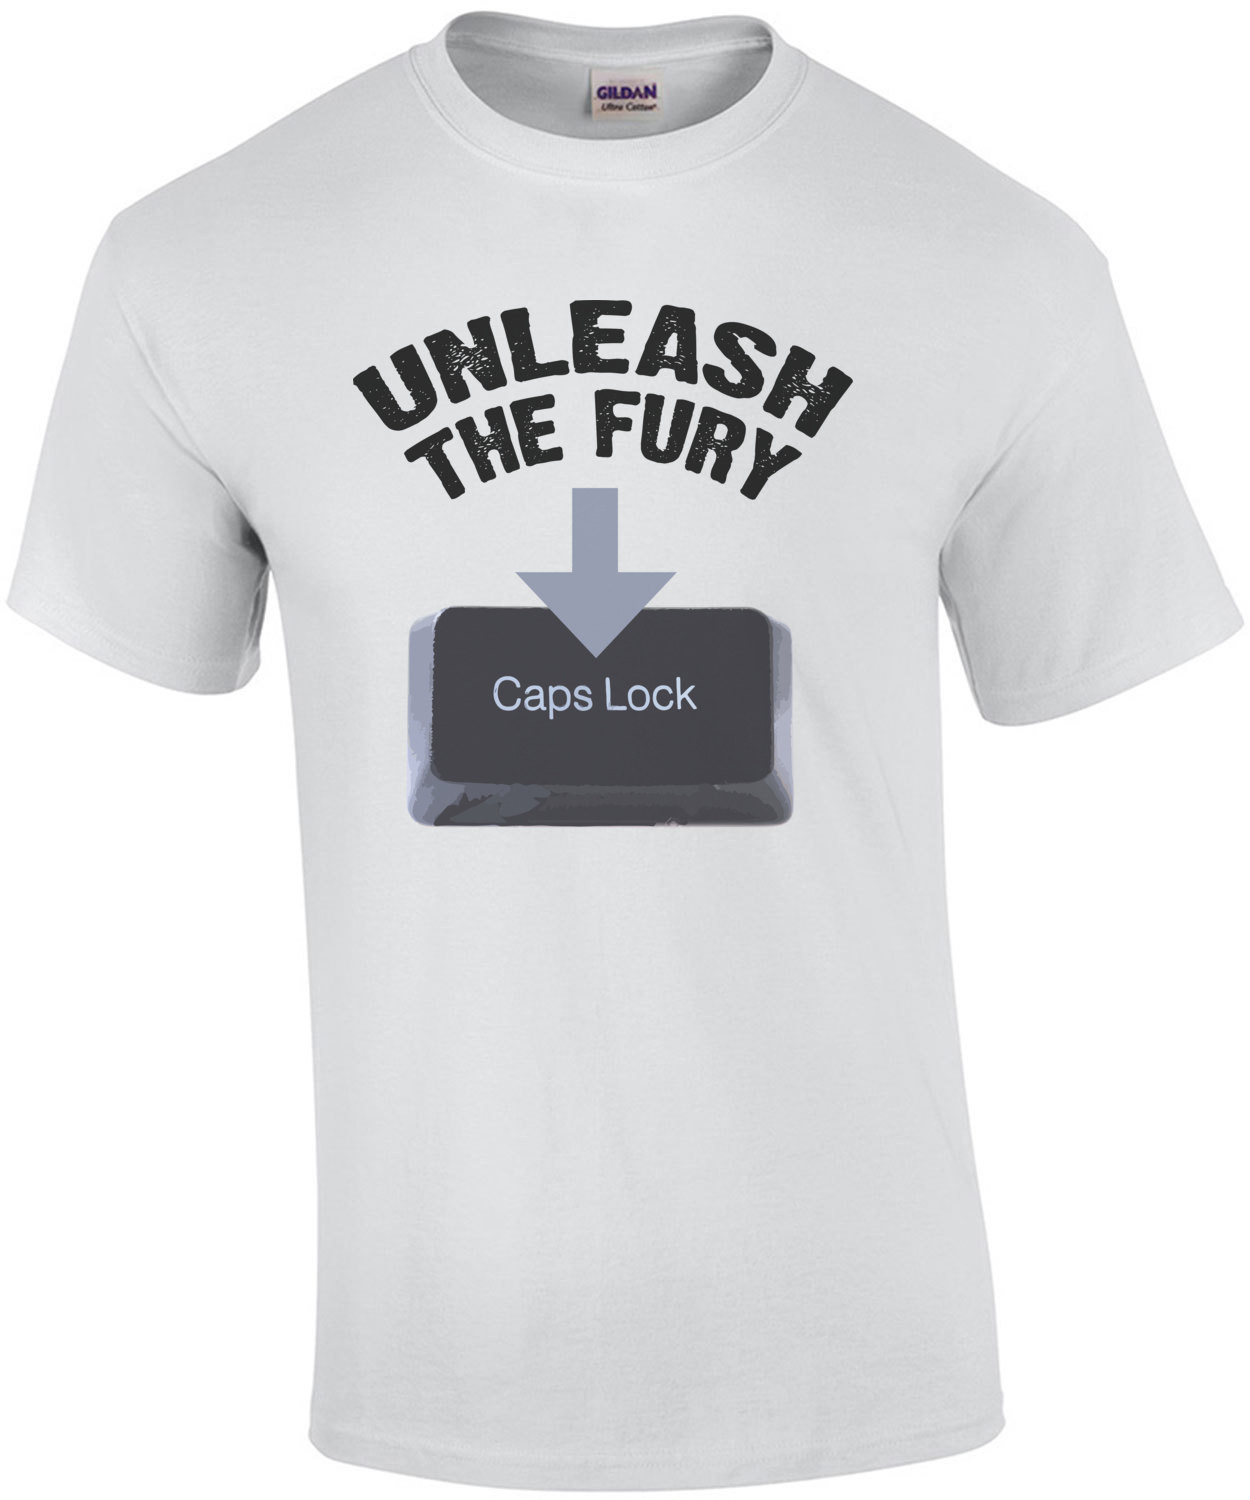 Unleash the fury - funny t-shirt